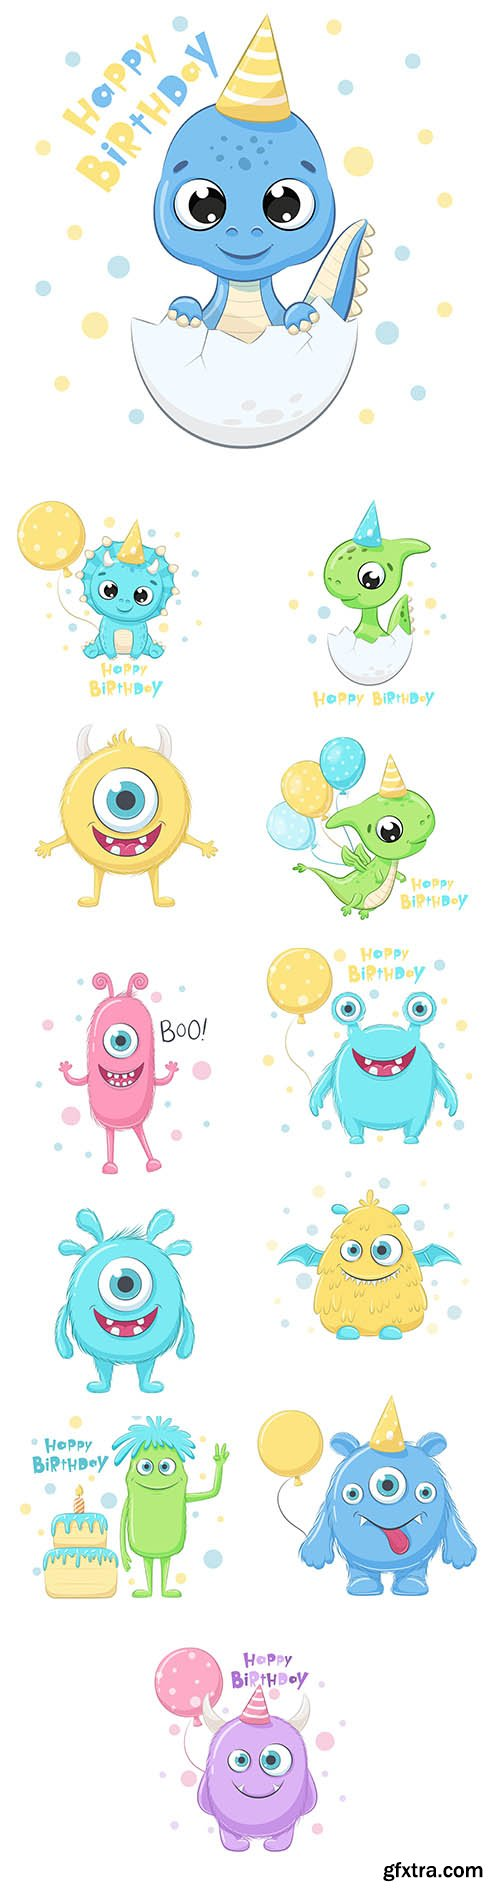 Cute dinosaur with phrase happy birthday and monsters illustration